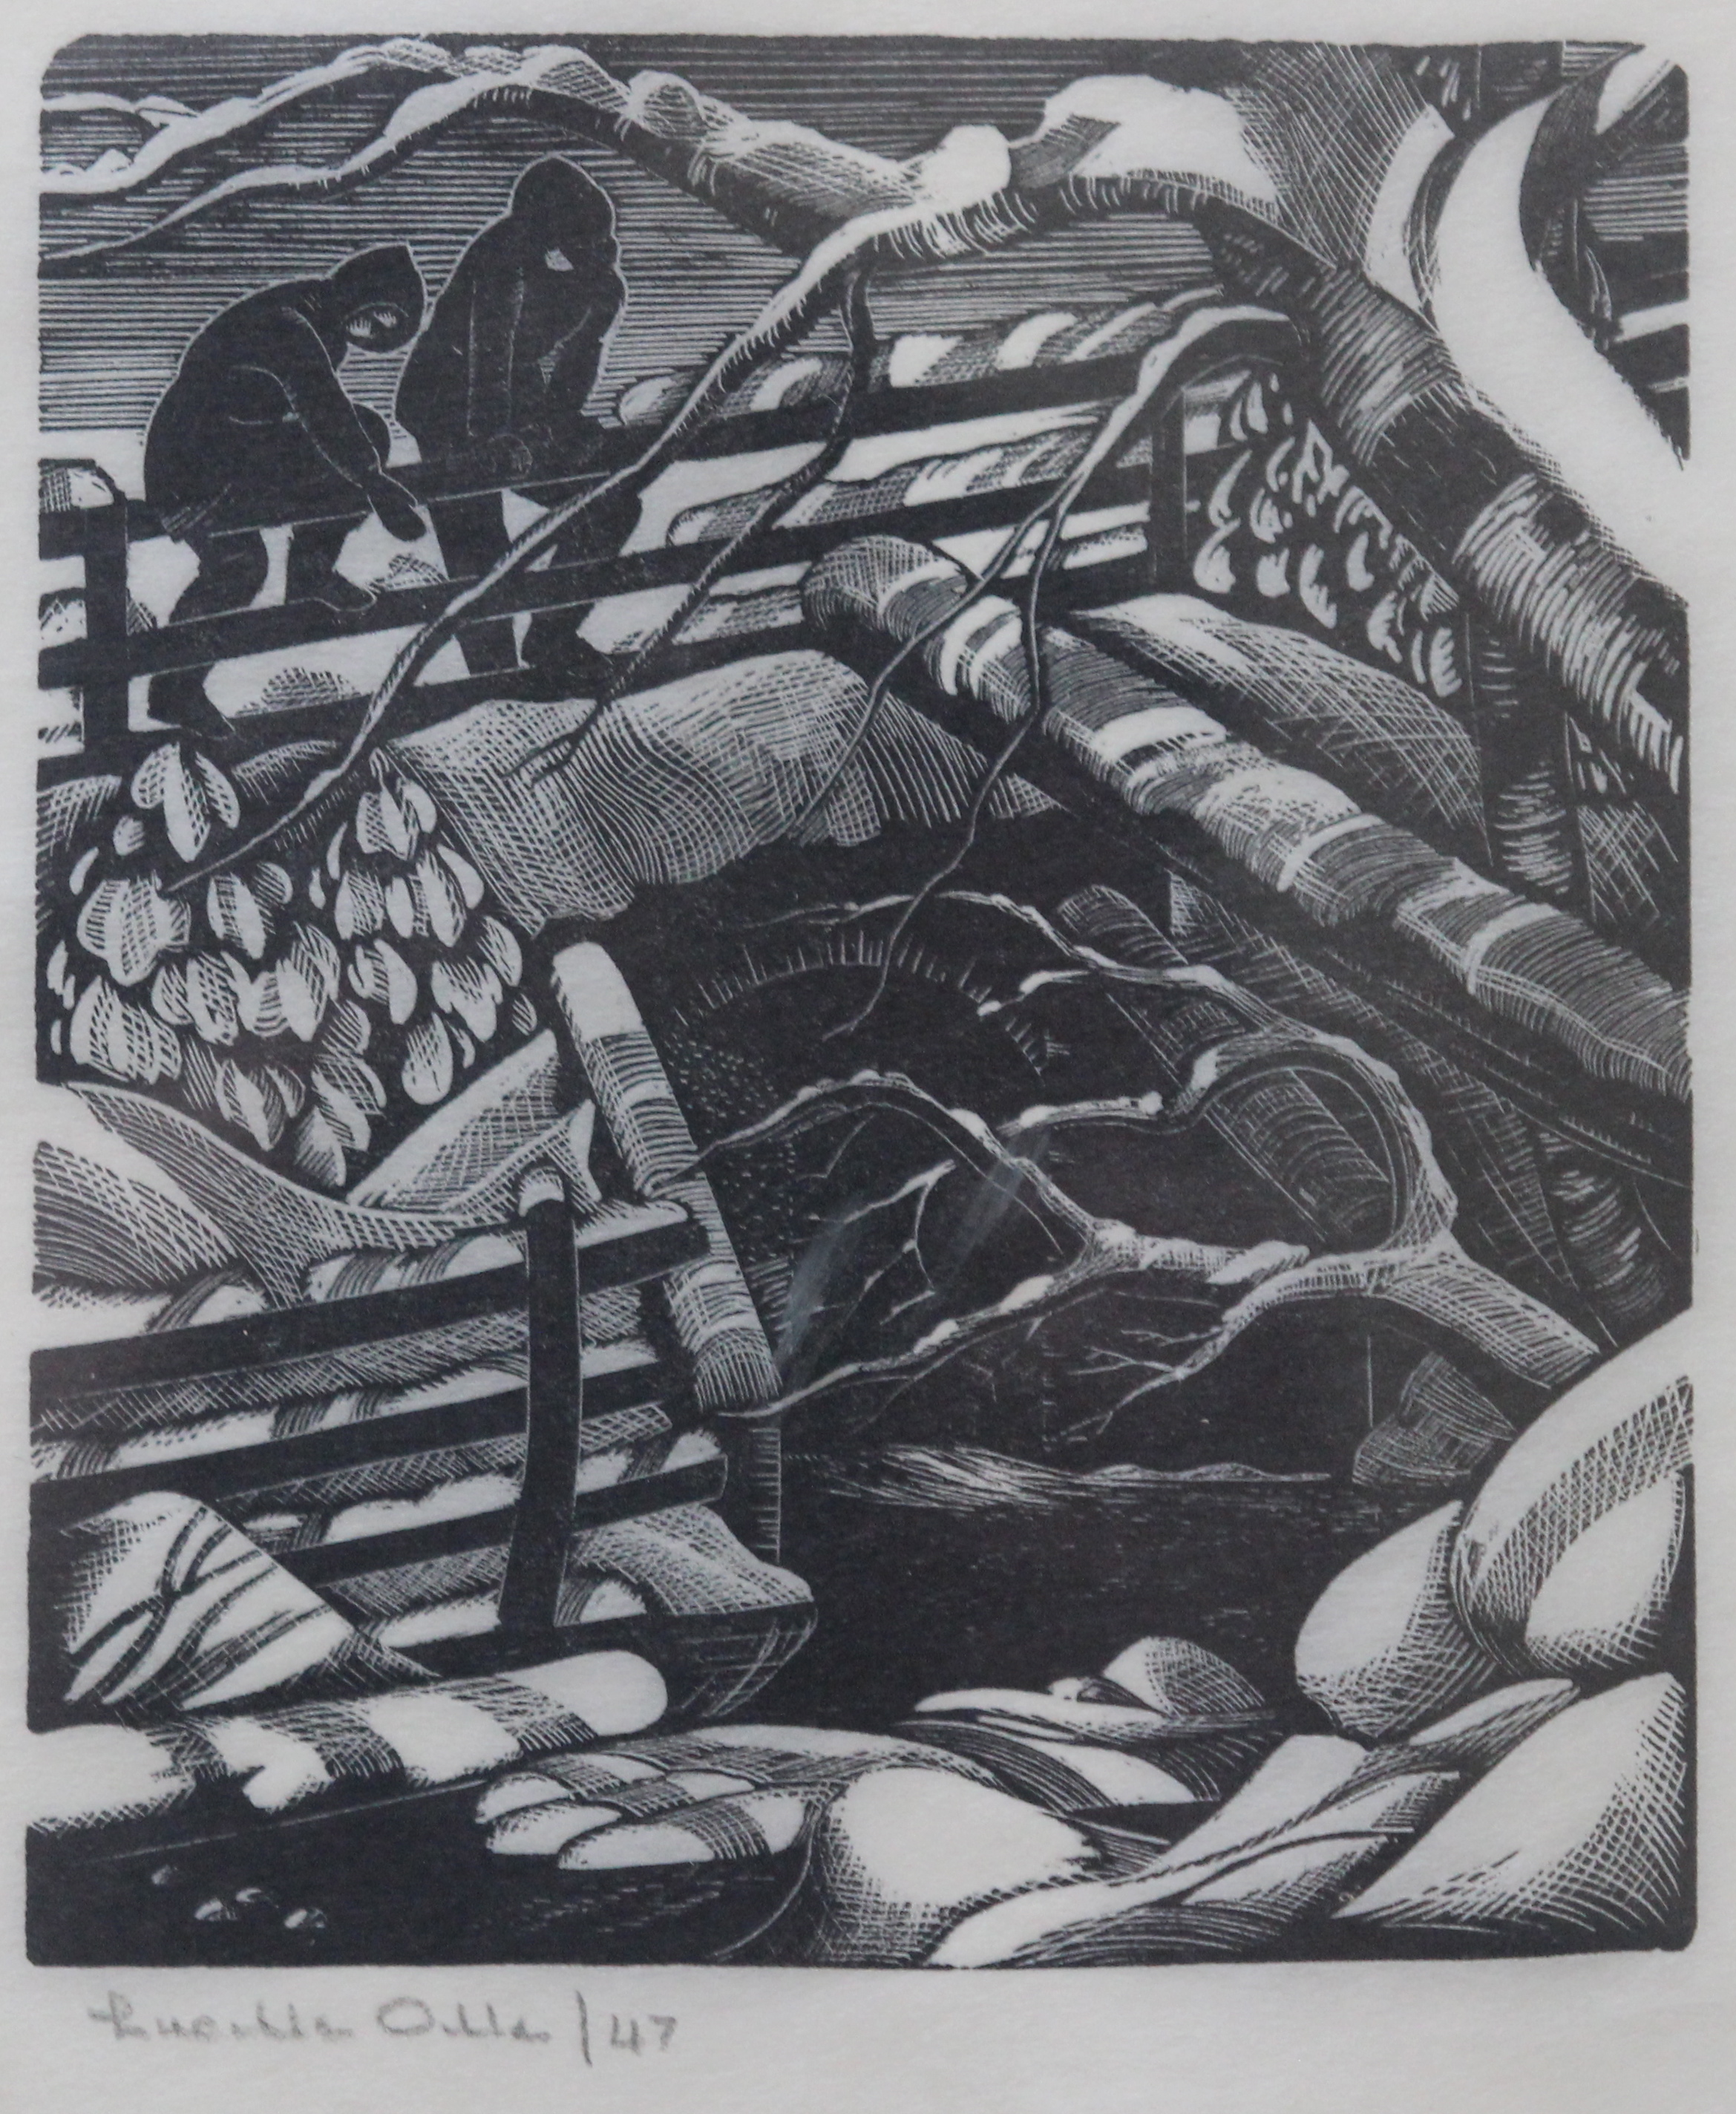 Lucille Oille, On the Bridge in Winter, 1947